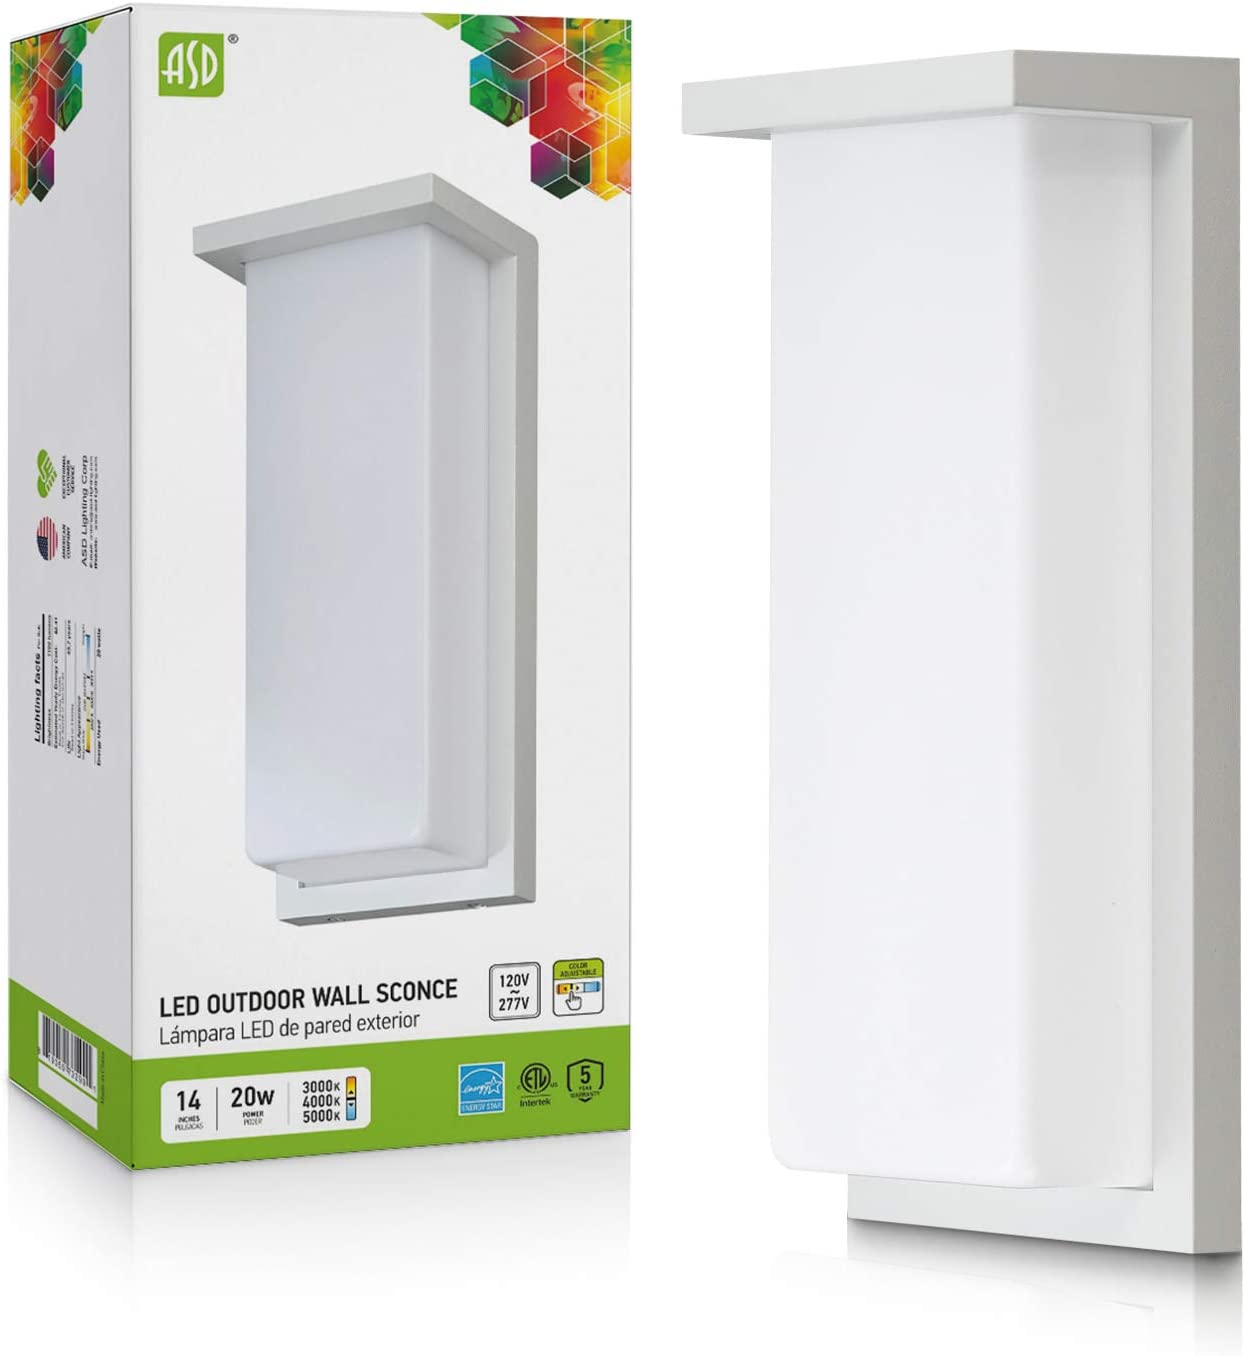 ASD Max 72% OFF LED Outdoor Popular standard Wall Sconce Lighting 20W Po Inch 1100LM Front 14